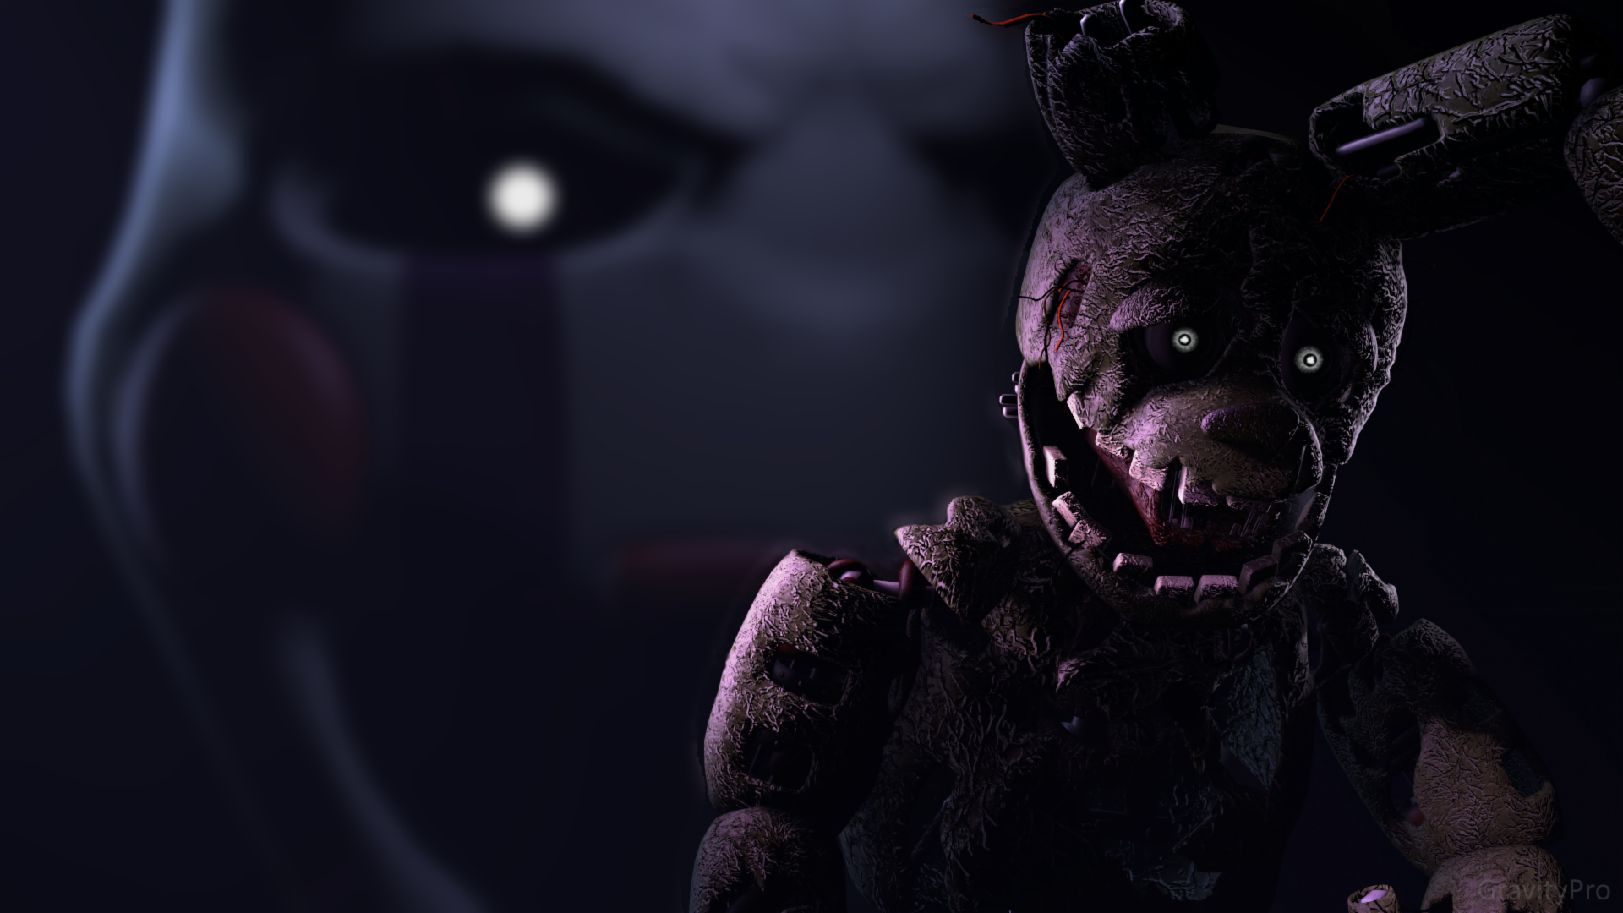 Five Nights at Freddy's question. Who in the Afton family, do you believe is the killer?